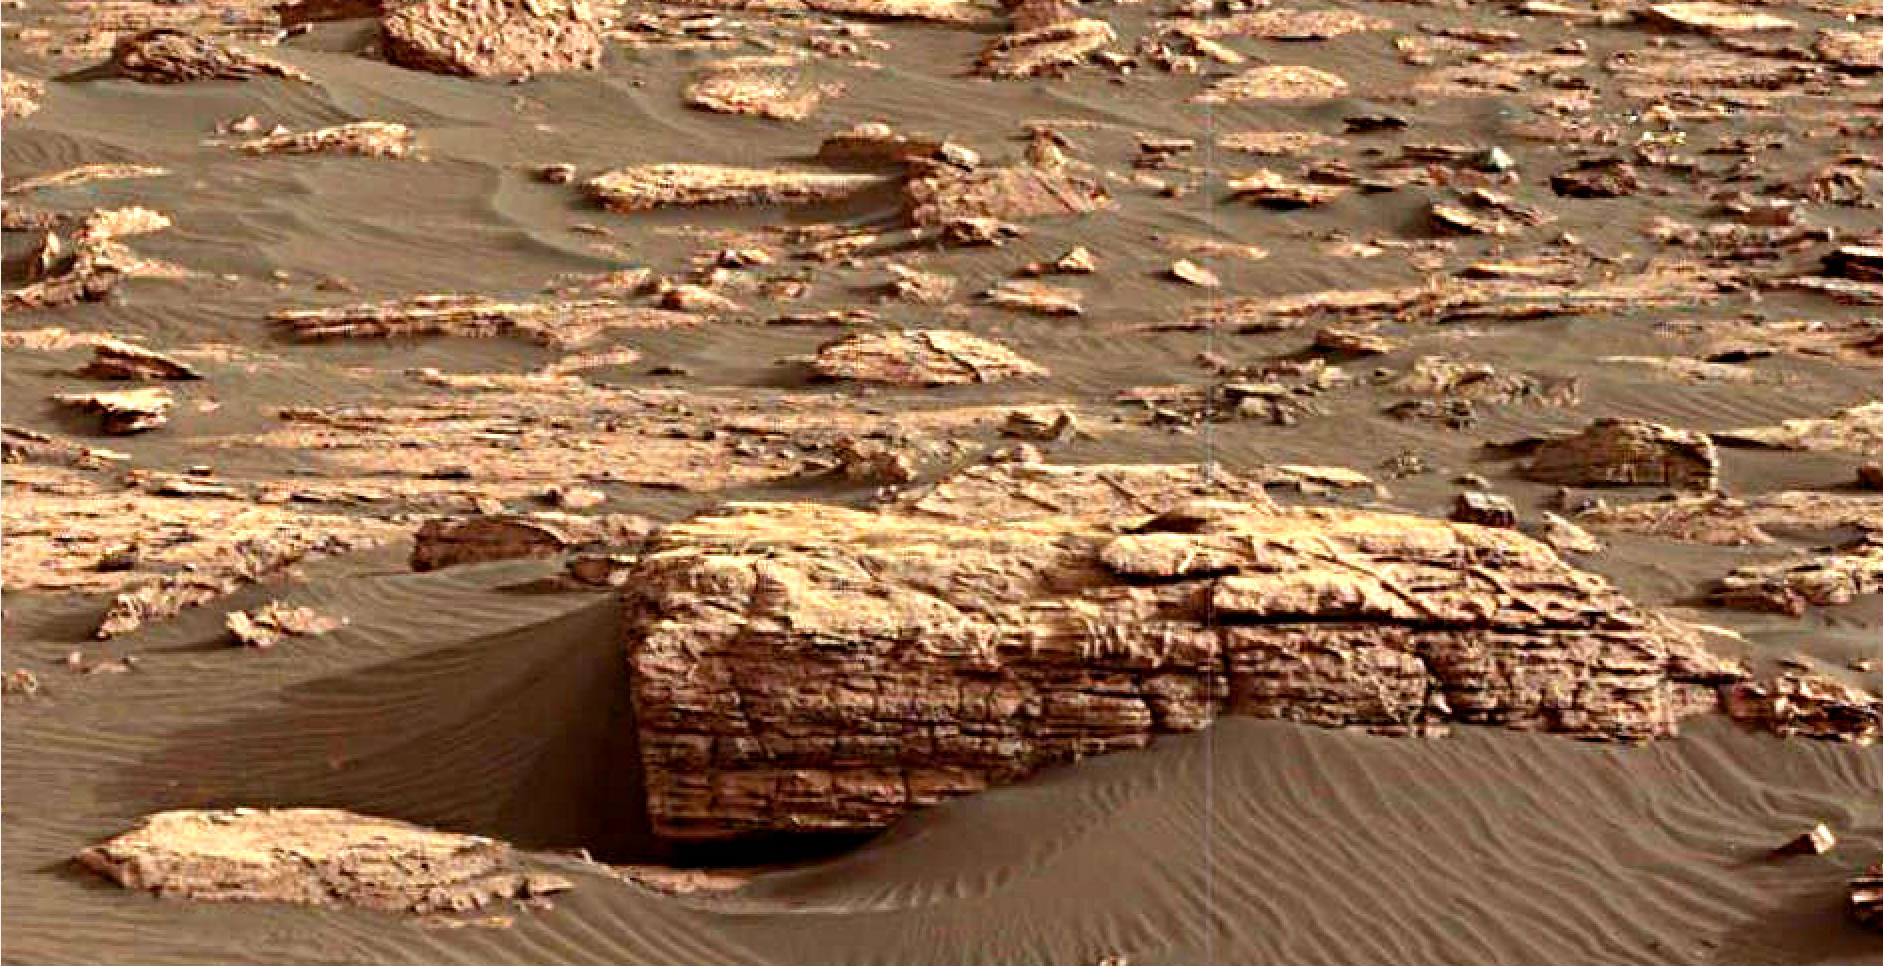 mars-sol-1512-anomaly-artifacts-5-was-life-on-mars